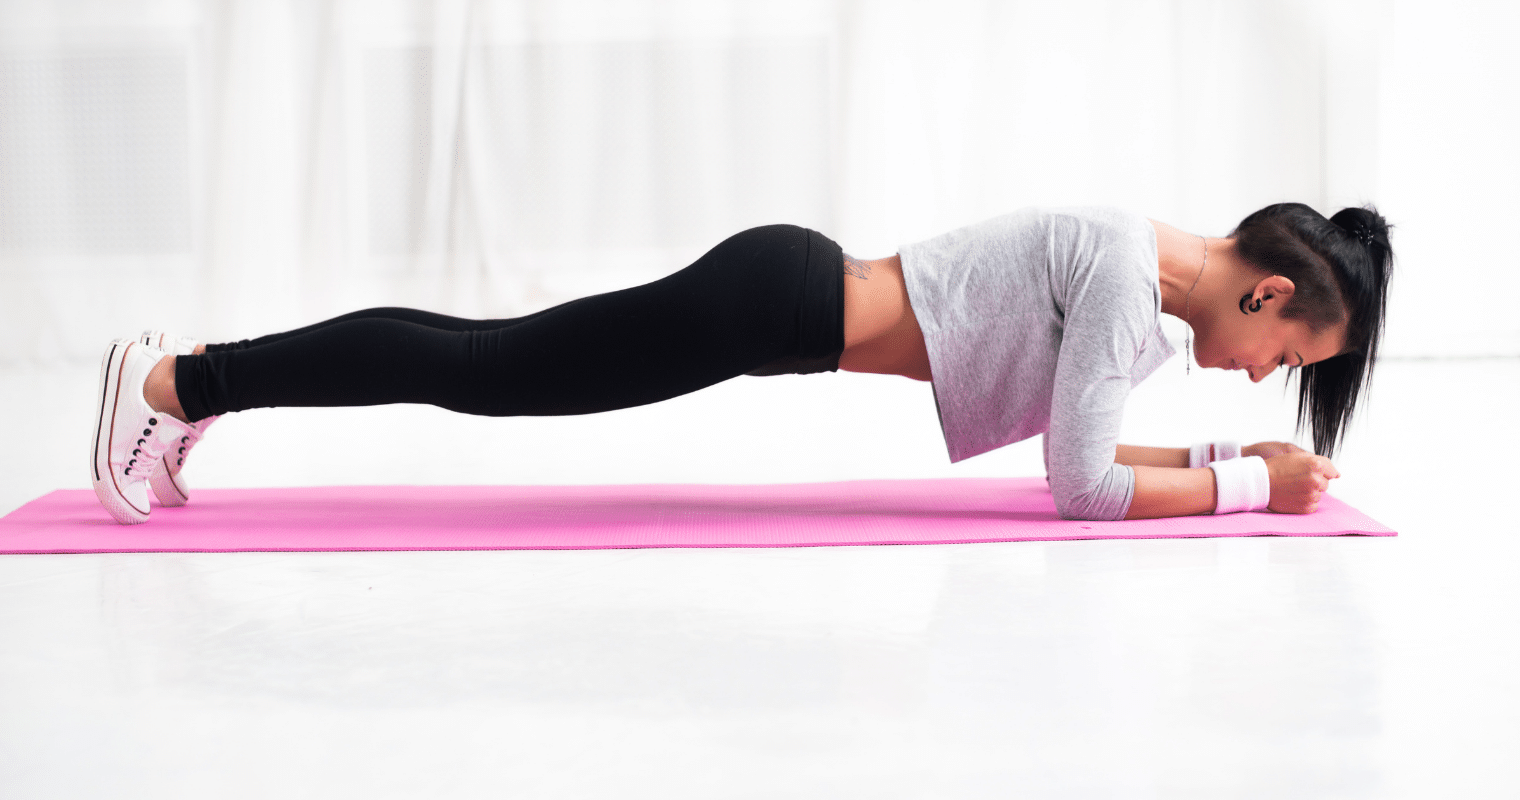 Plank Every Day For A Month